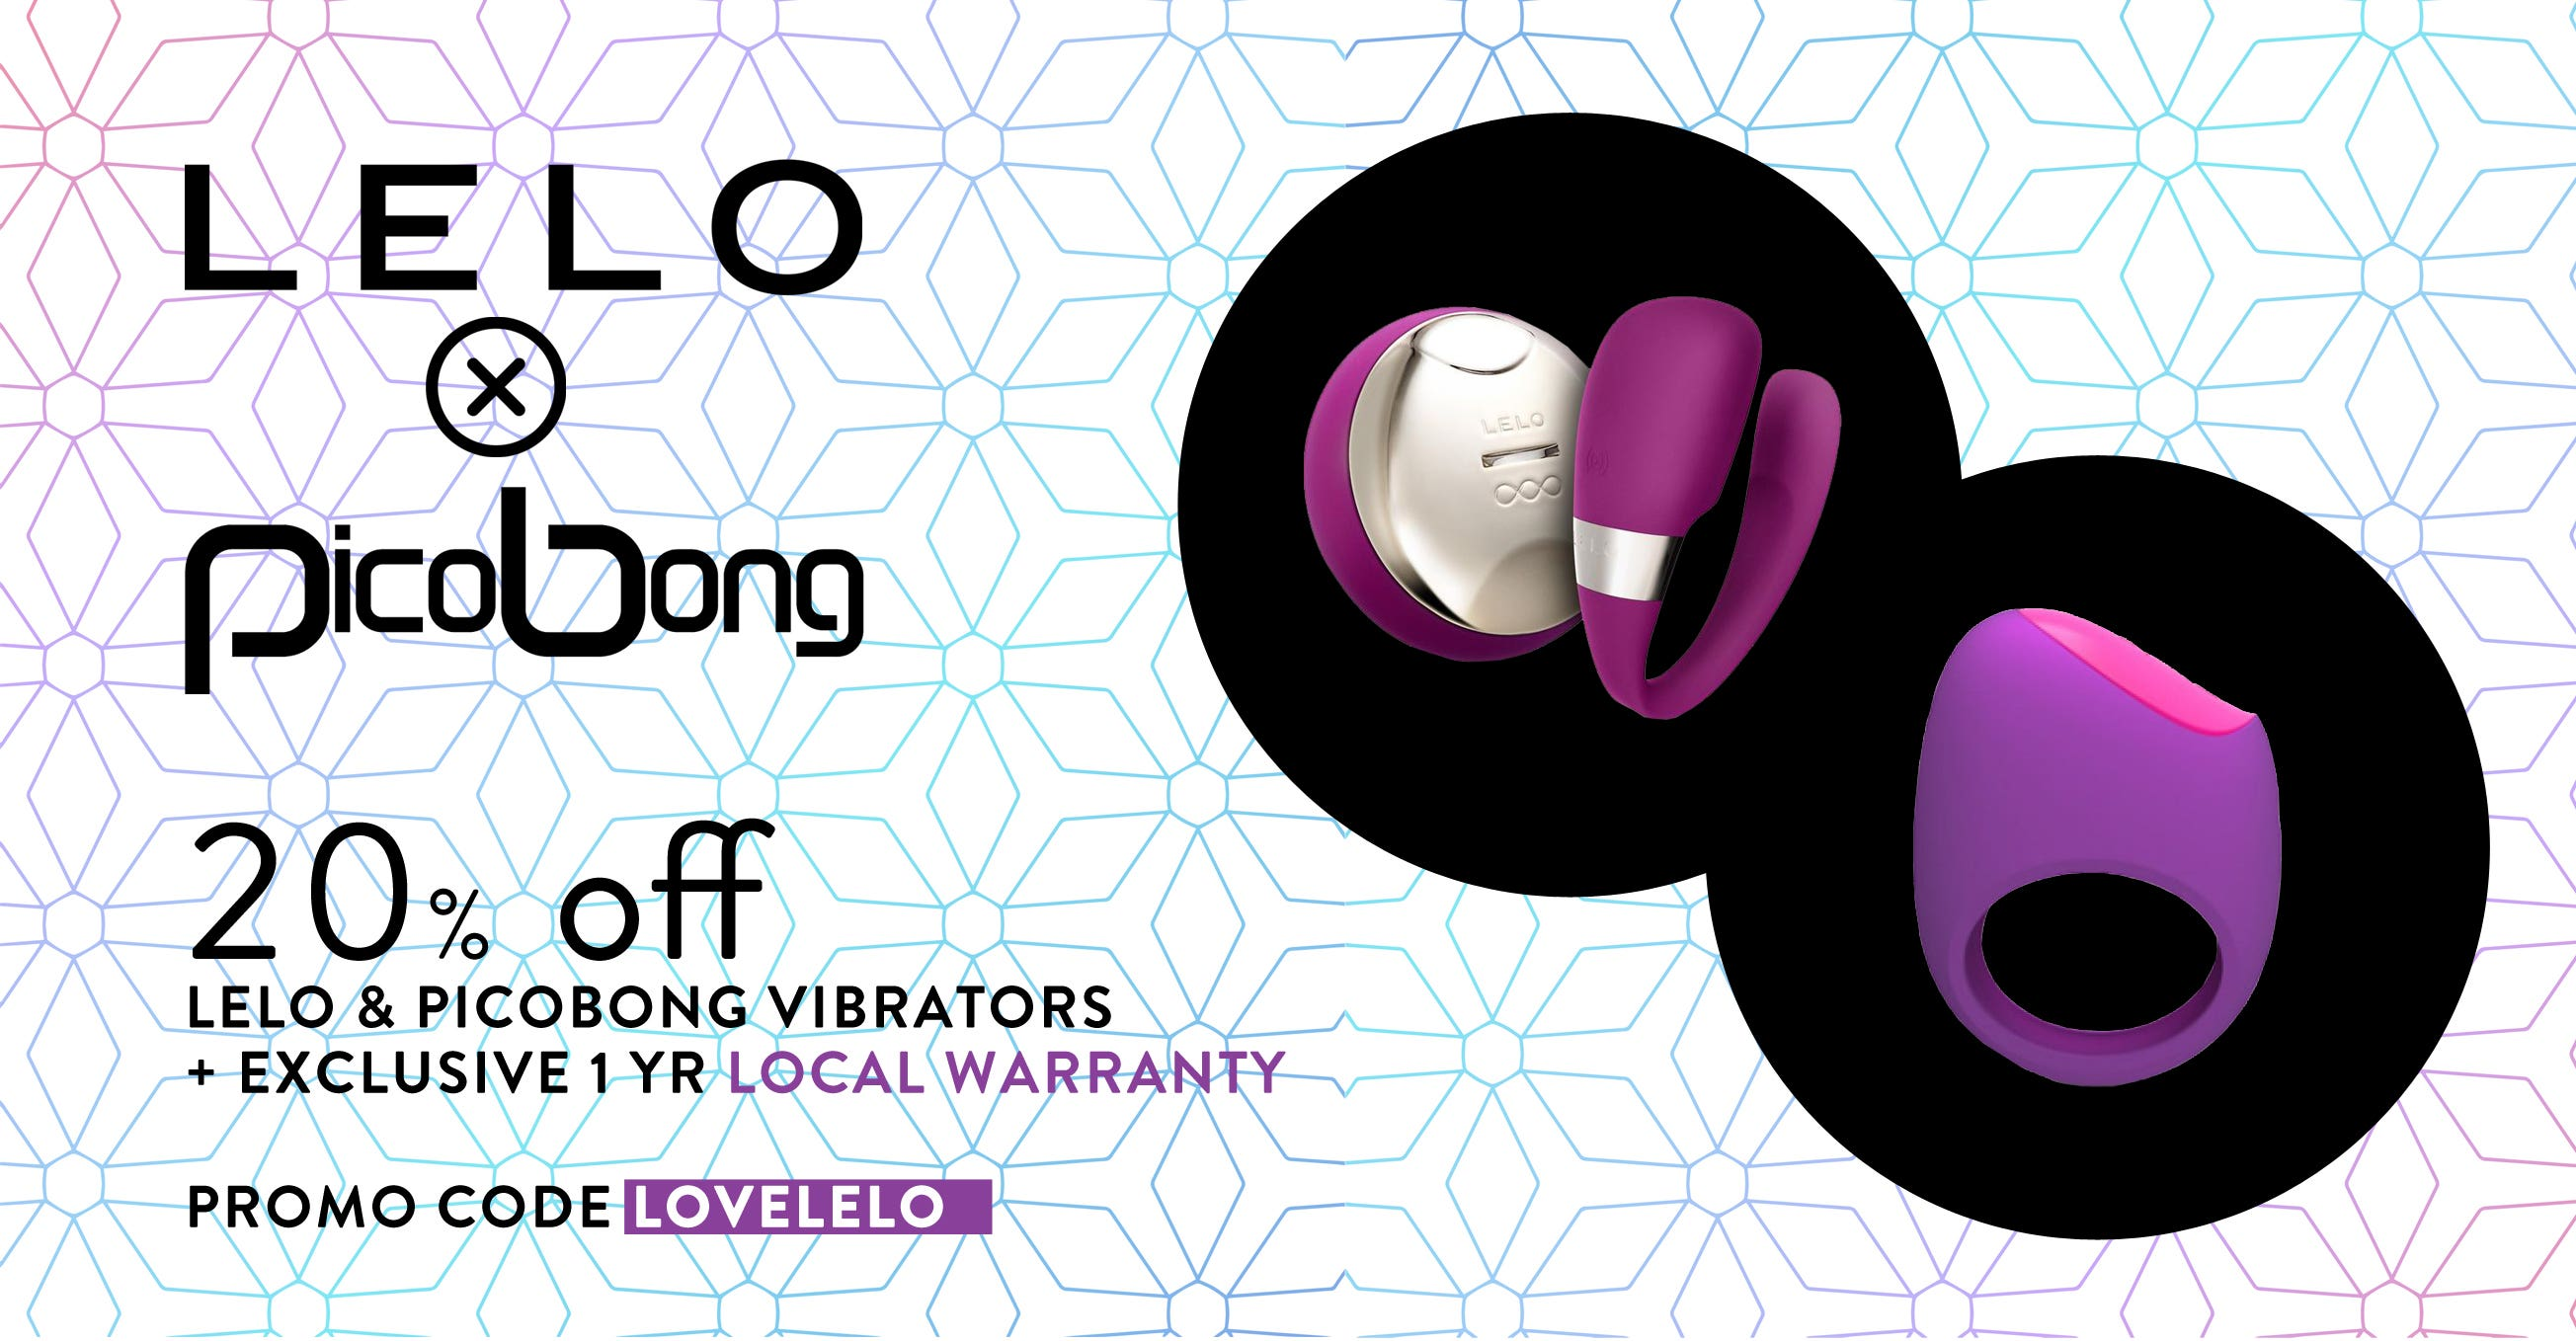 Buy LELO & PICOBONG at 20% OFF